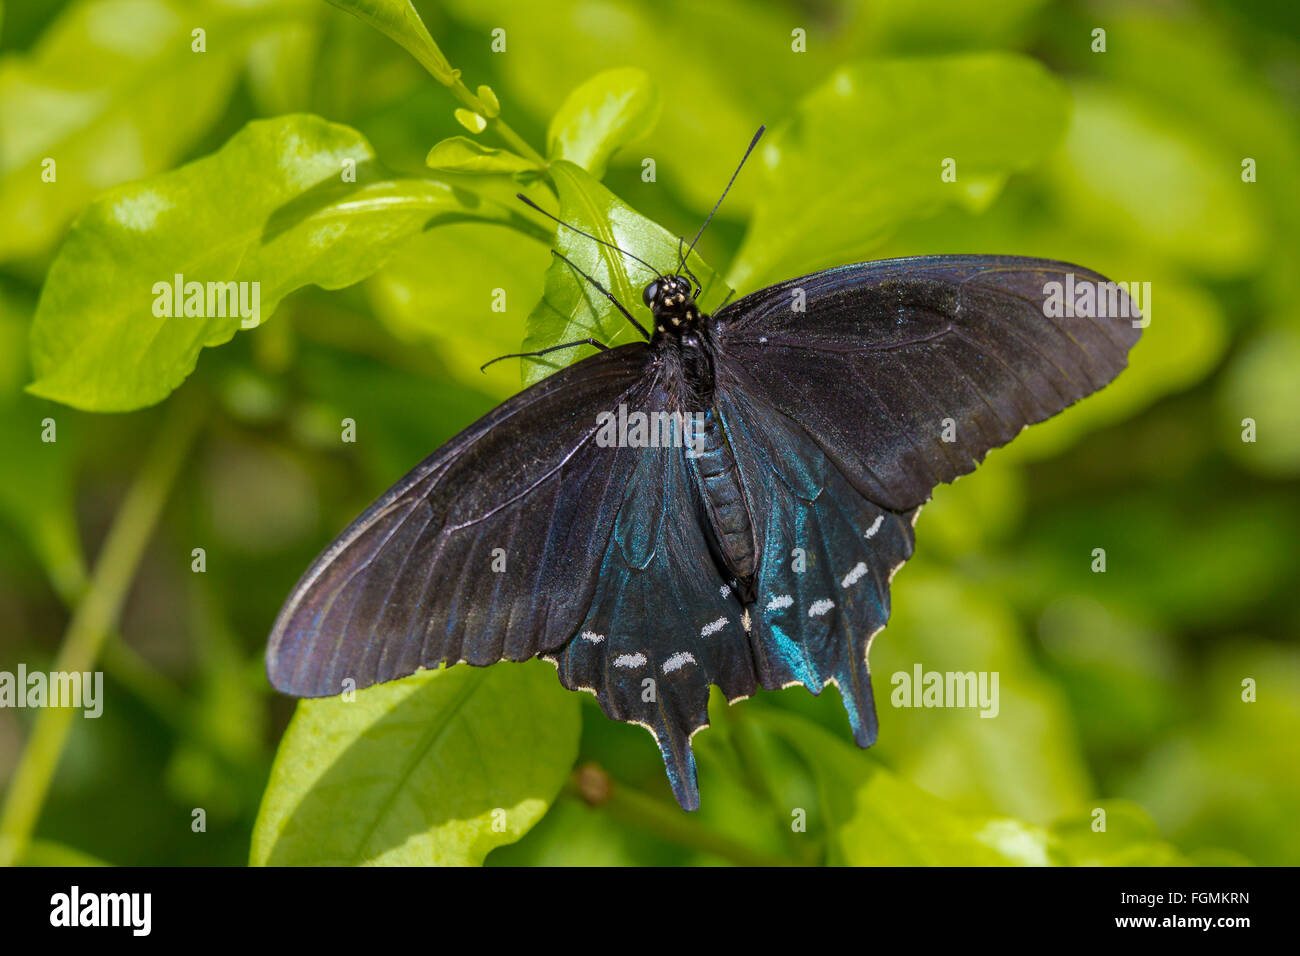 Pipevine Swallowtail butterfly Battus philenor at The Butterfly Estates in Fort Myers Florida - Stock Image